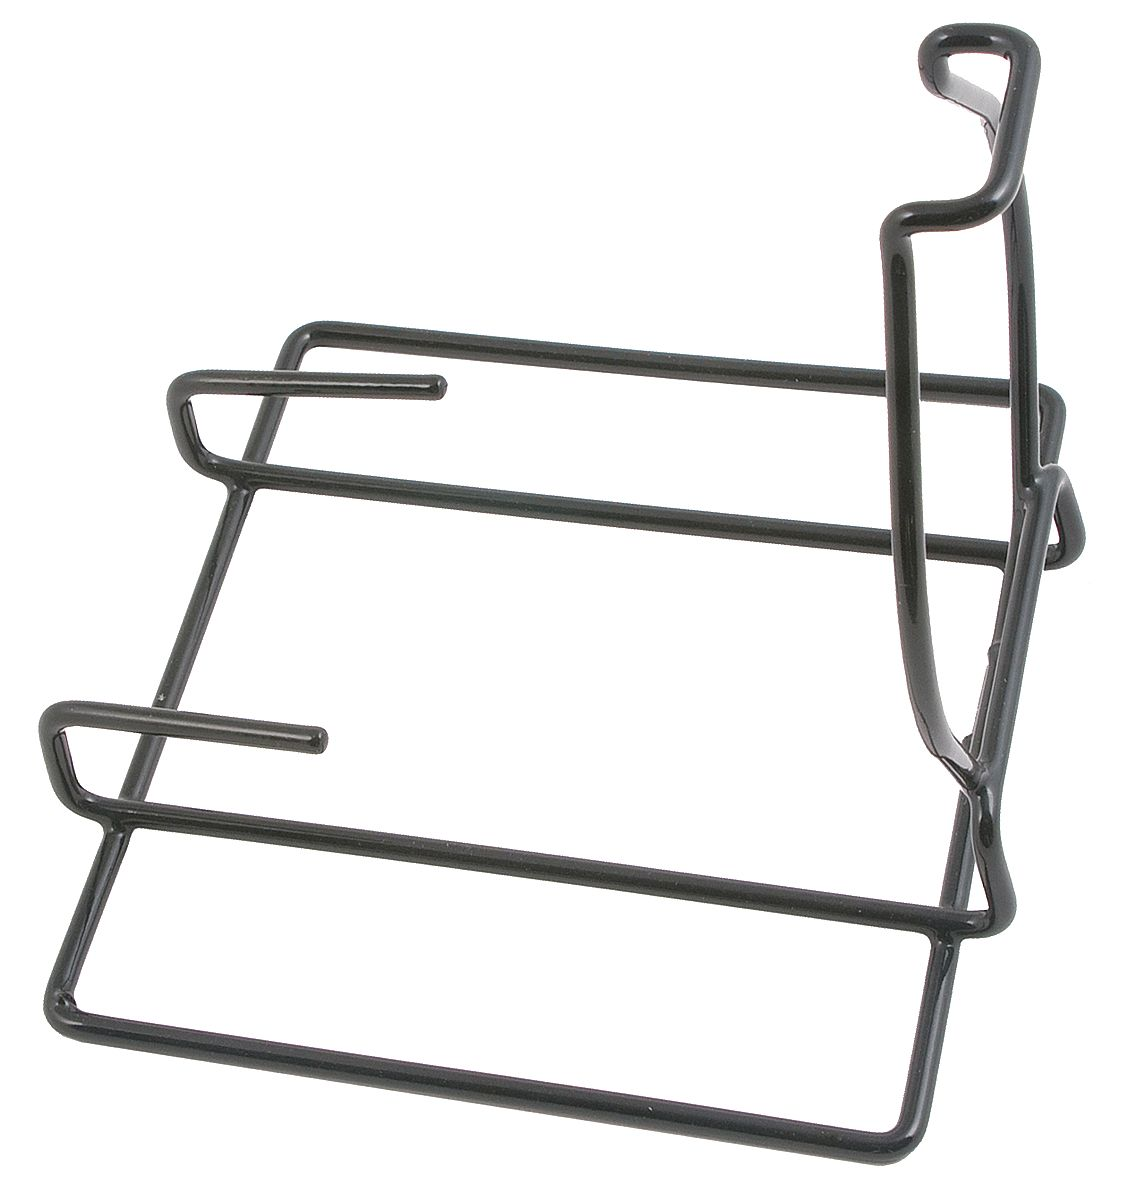 wire frame bench top stand for Master Appliance heat guns